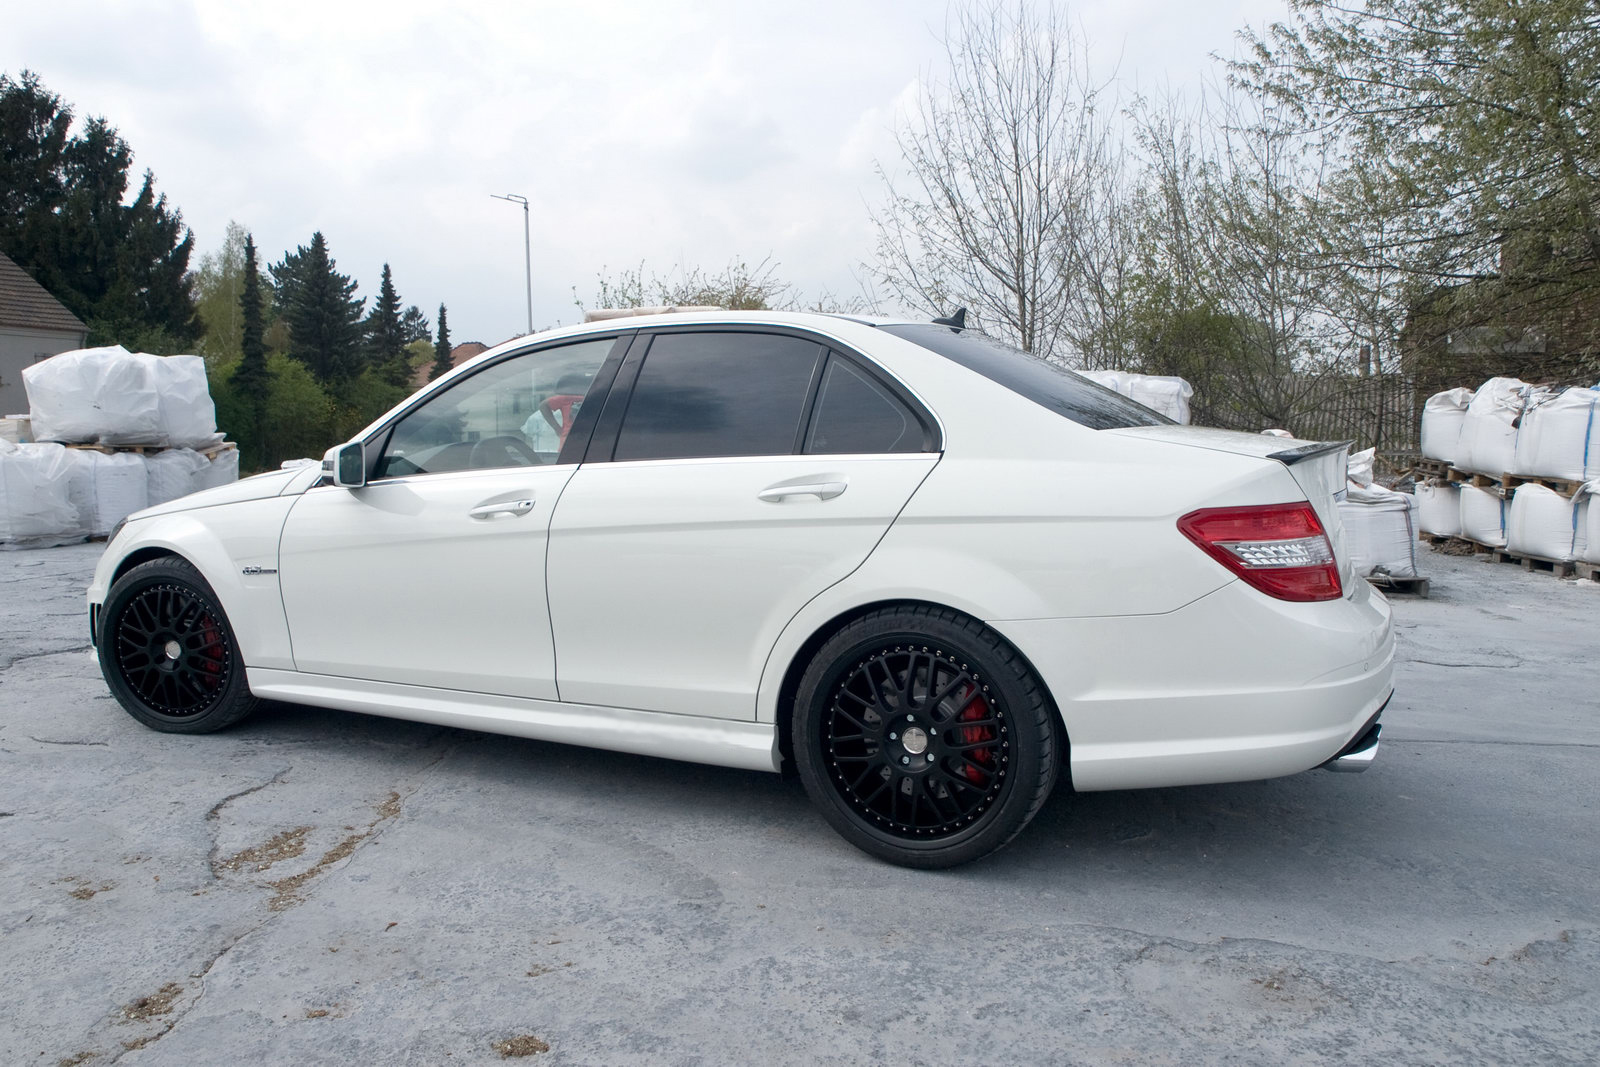 Mercedes Kubatech C63 AMG 6 Kubatech's Mercedes Benz C63 AMG –More Energy Efficient and Competent